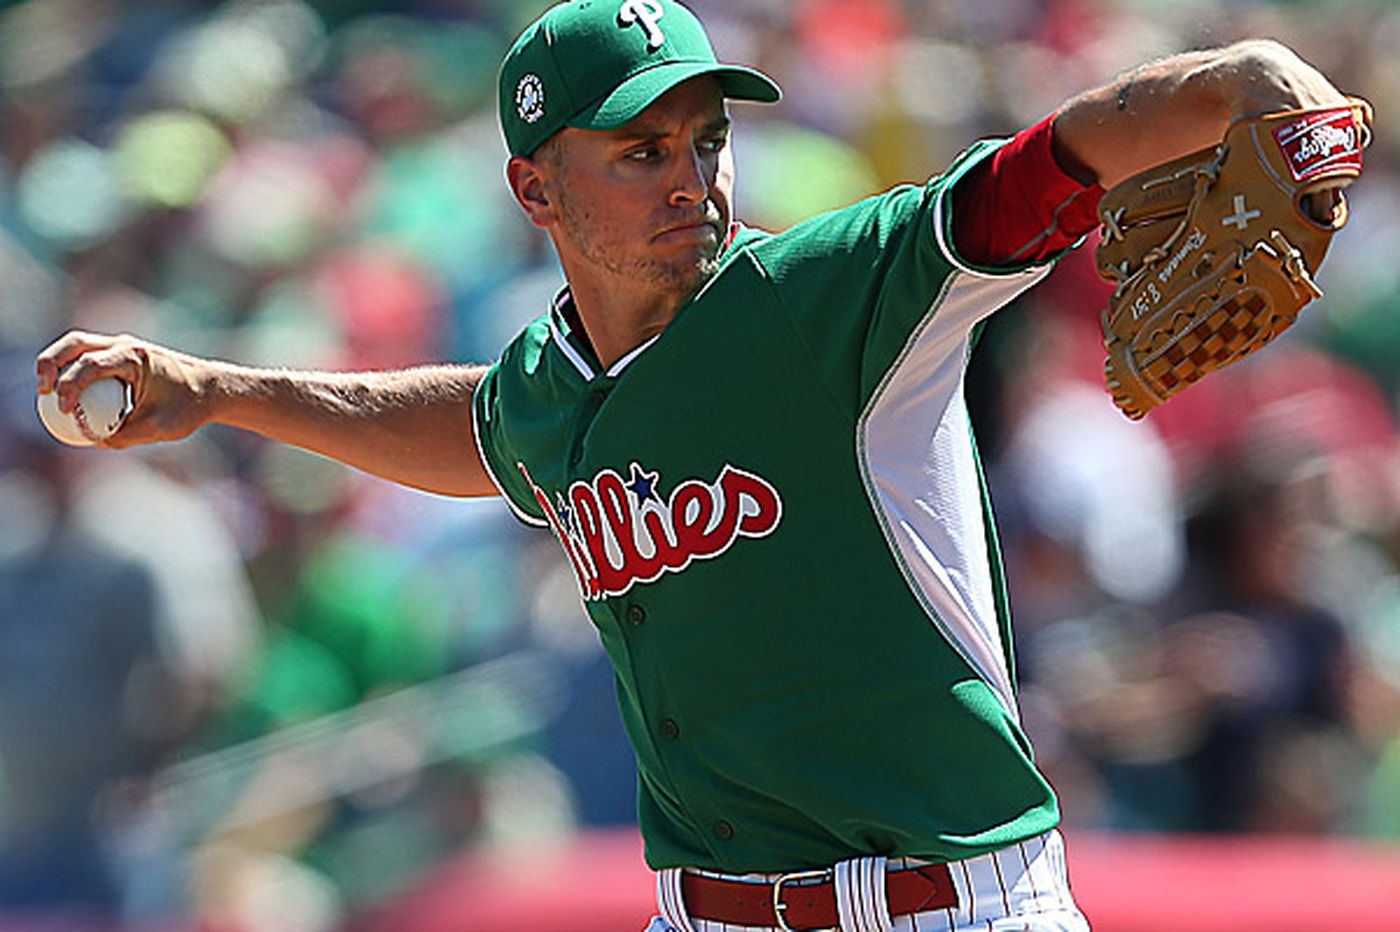 Phillies Notes: Buchanan surprisingly strikes out 6 for Phillies